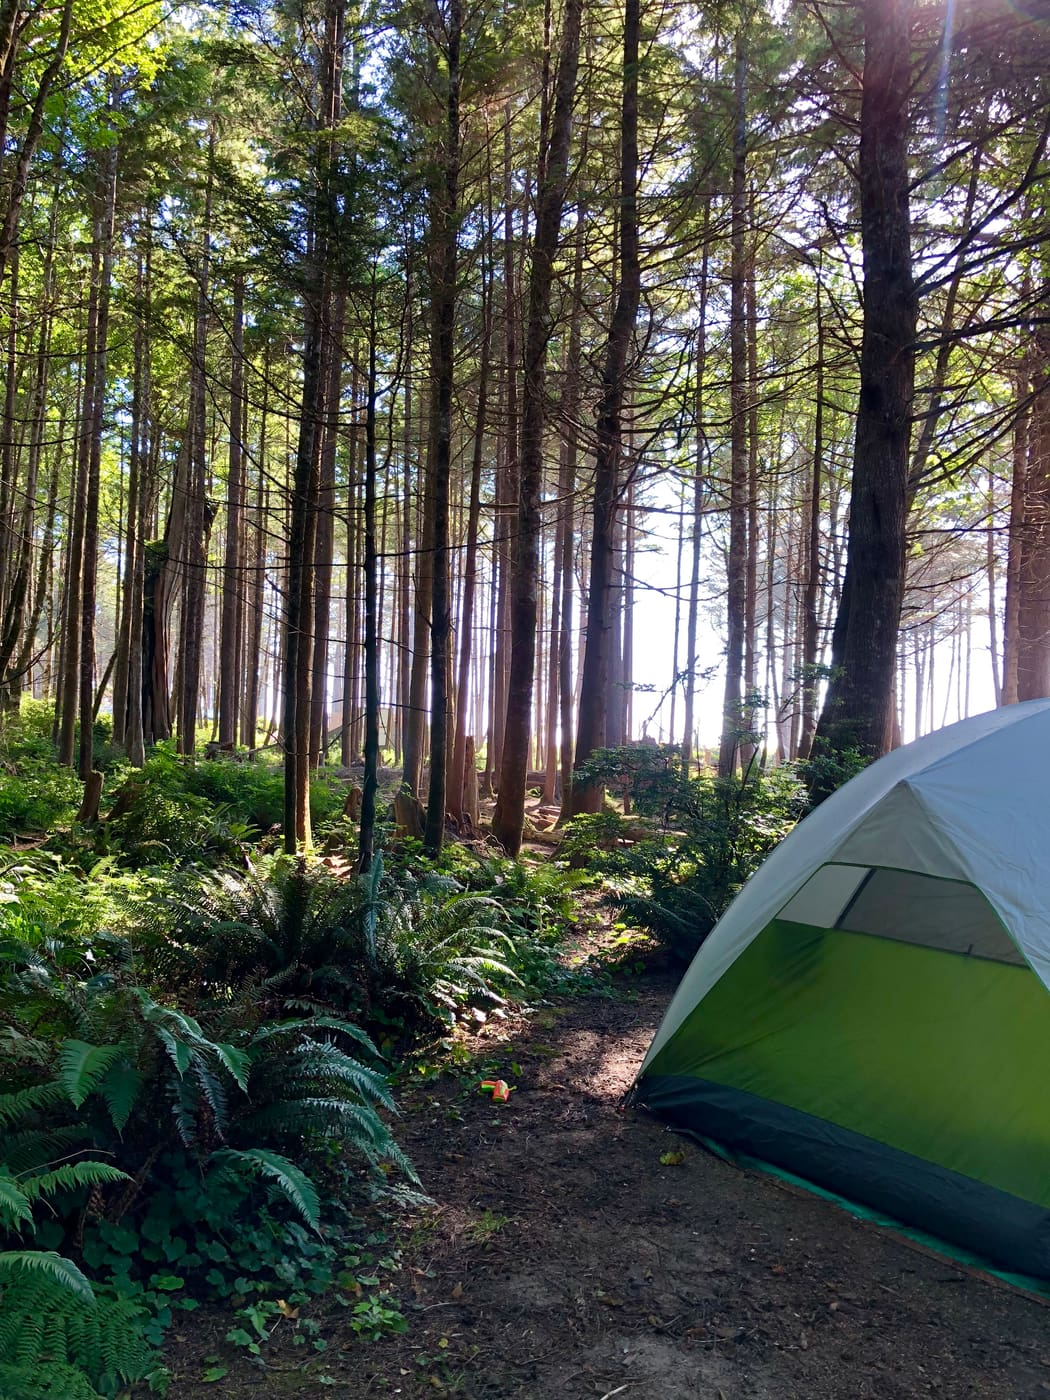 Green tent set up in a coastal forest.